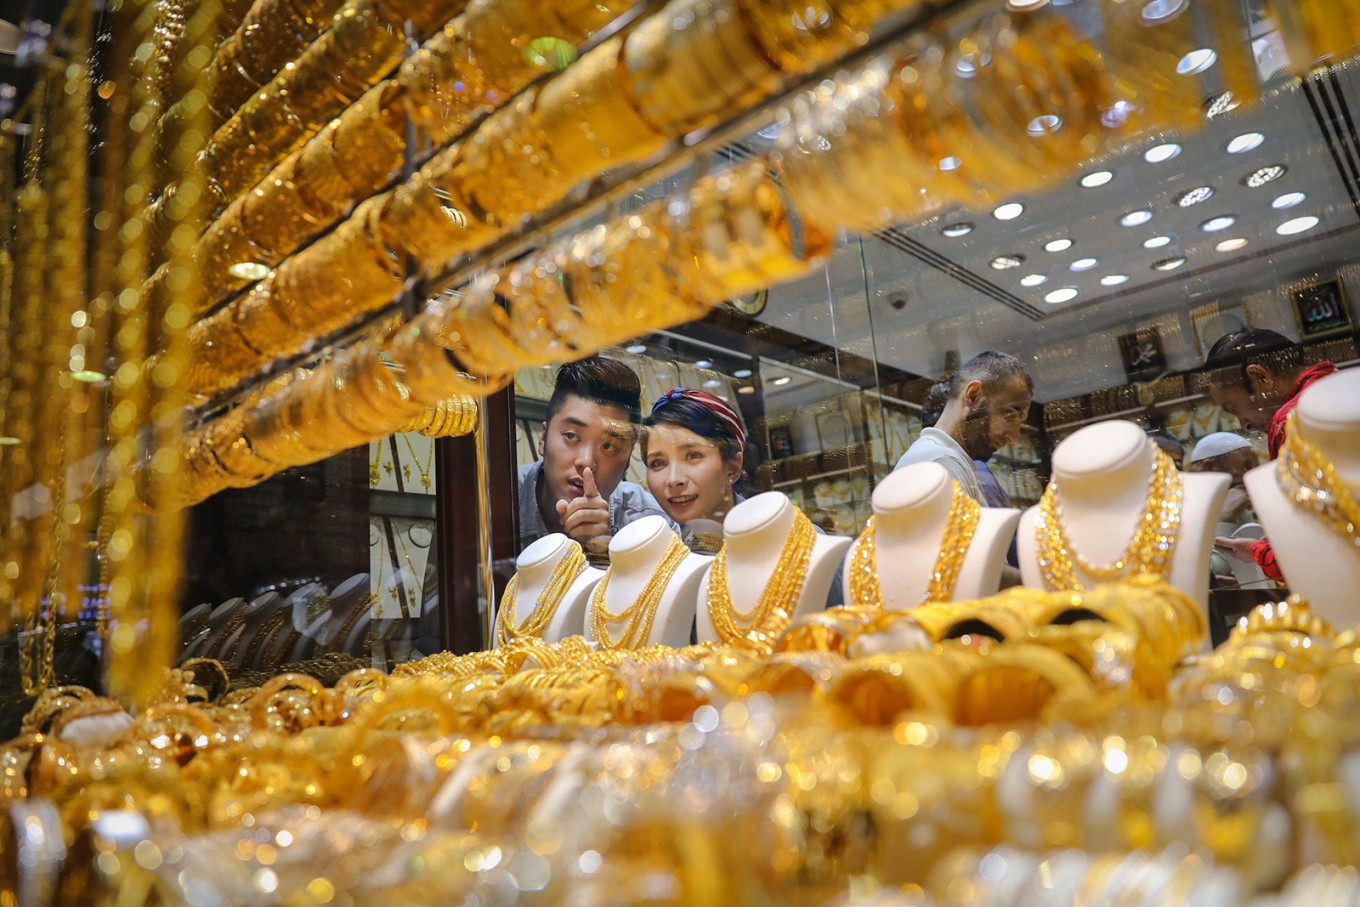 The Gold Souk in Deira